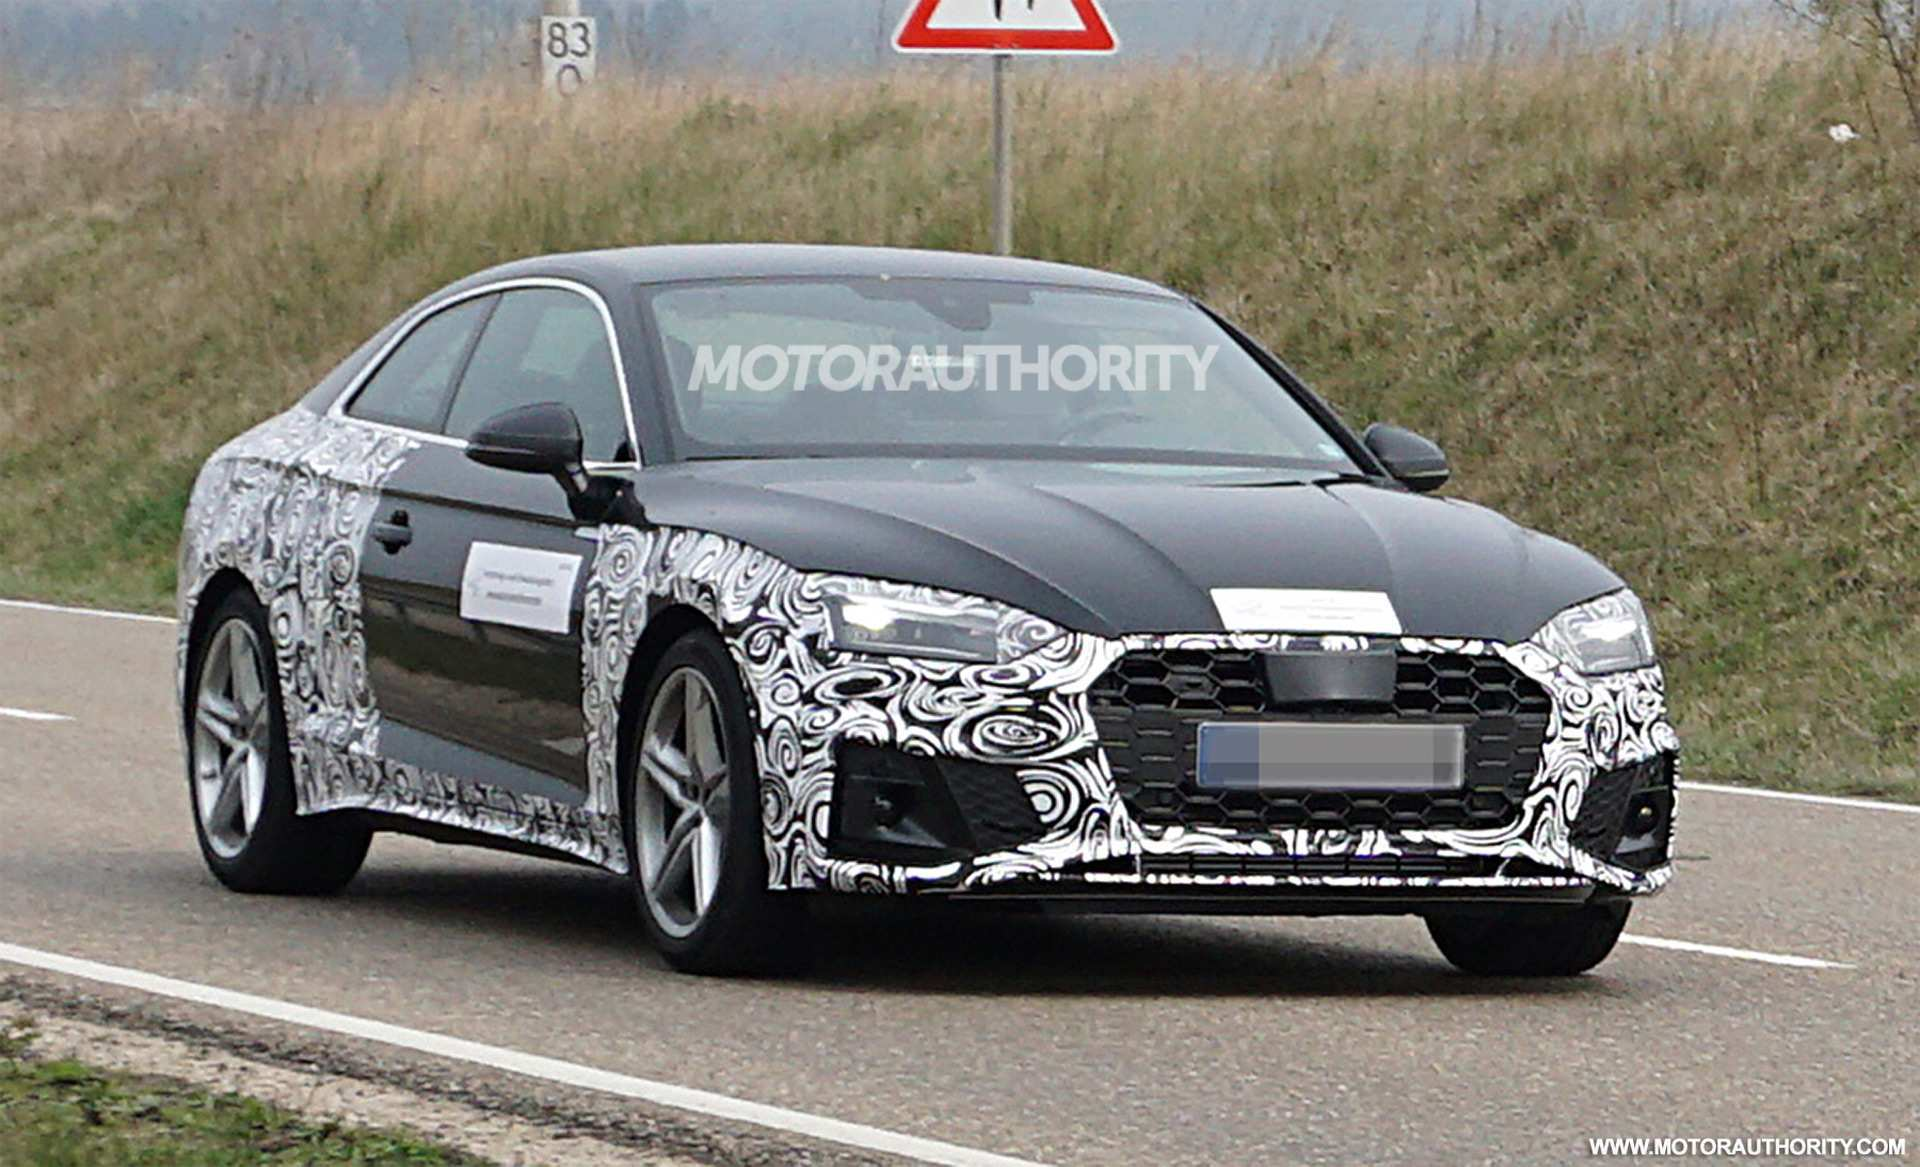 52 The Best 2020 Audi Rs5 Release Date